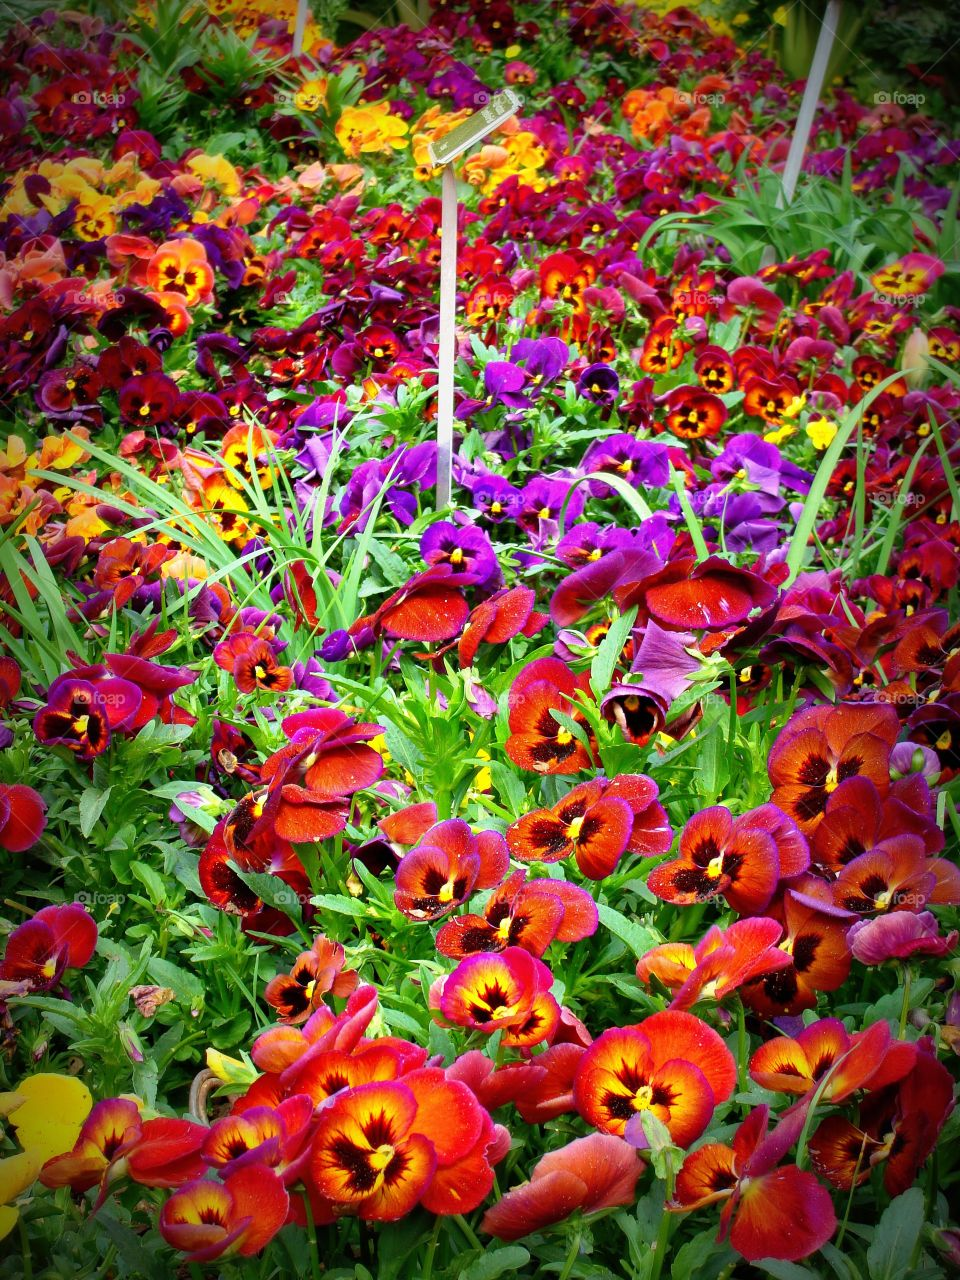 A bright and beautiful bed of purple and yellow pansies.